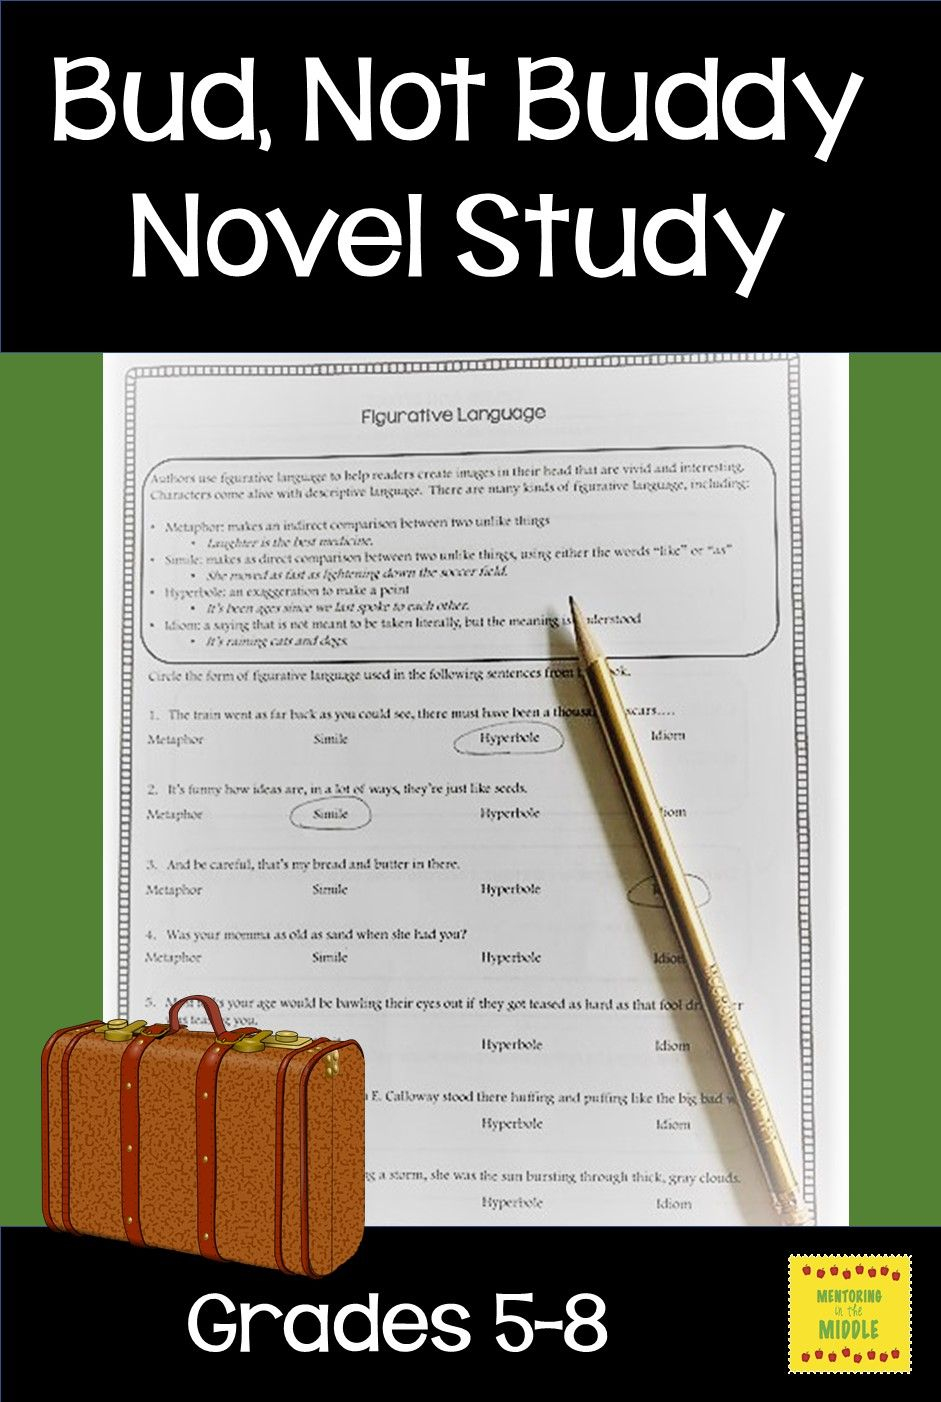 Bud, Not Buddy Novel Study | Mentoring in the Middle | Pinterest